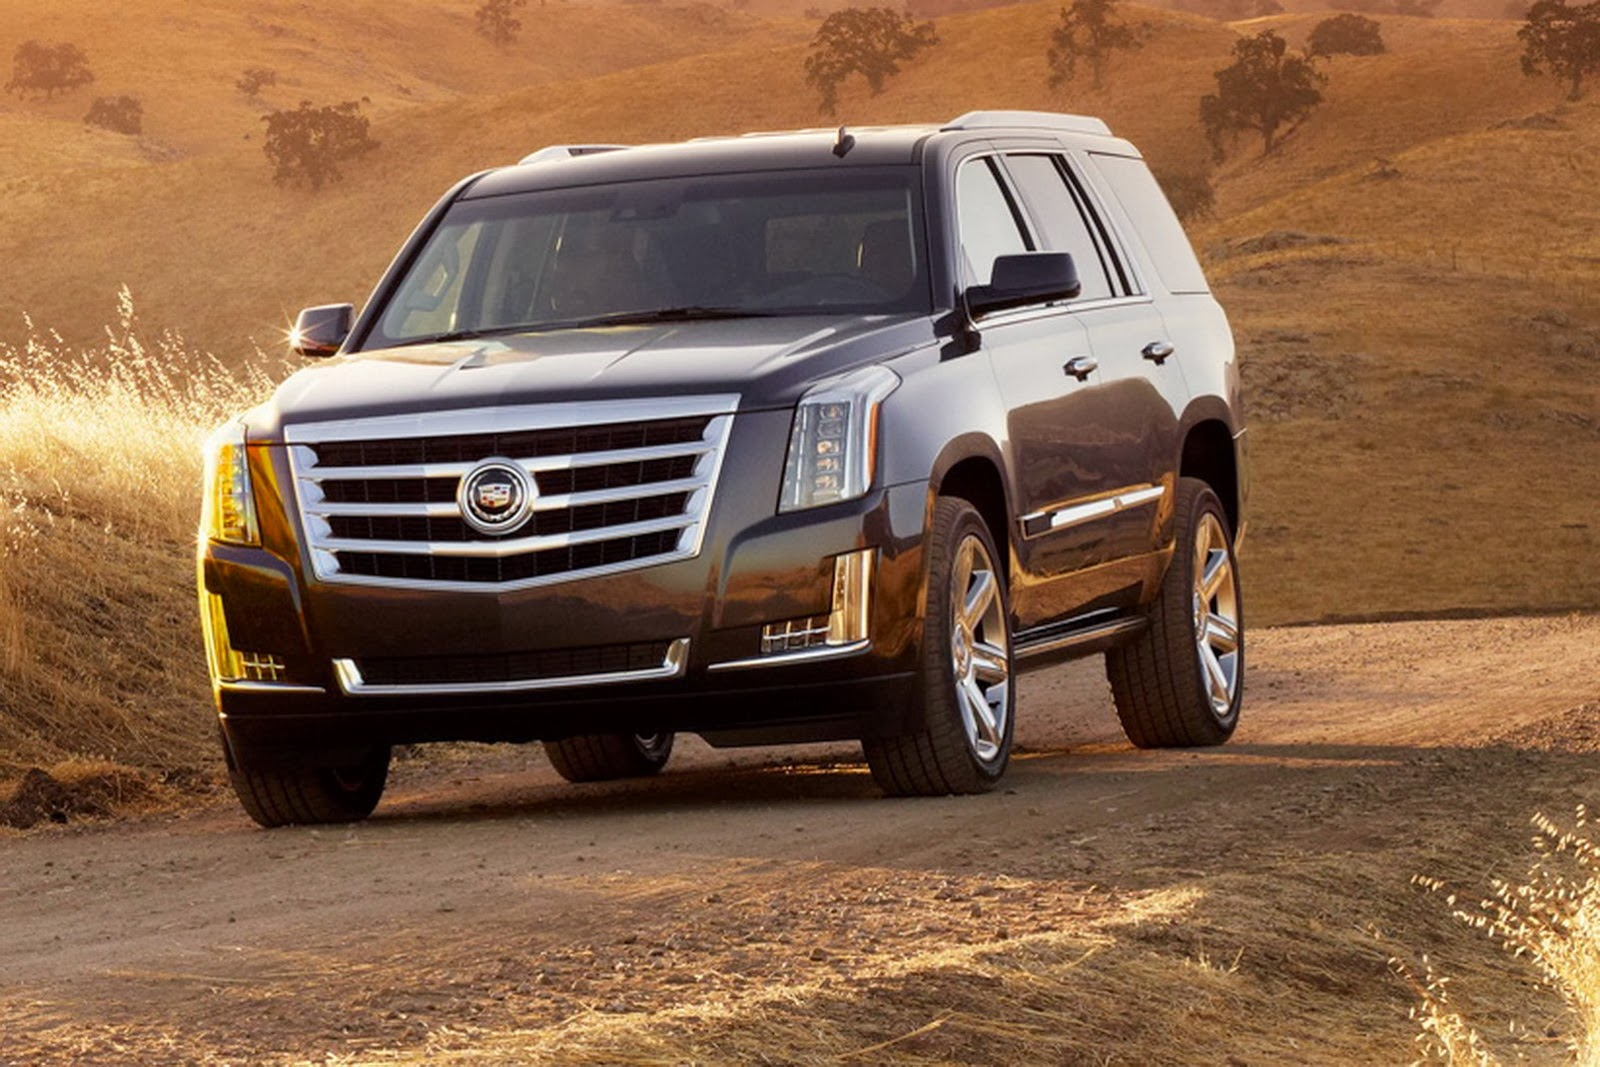 Used 2015 Cadillac Escalade >> 2015 Cadillac Escalade Officially Revealed - autoevolution